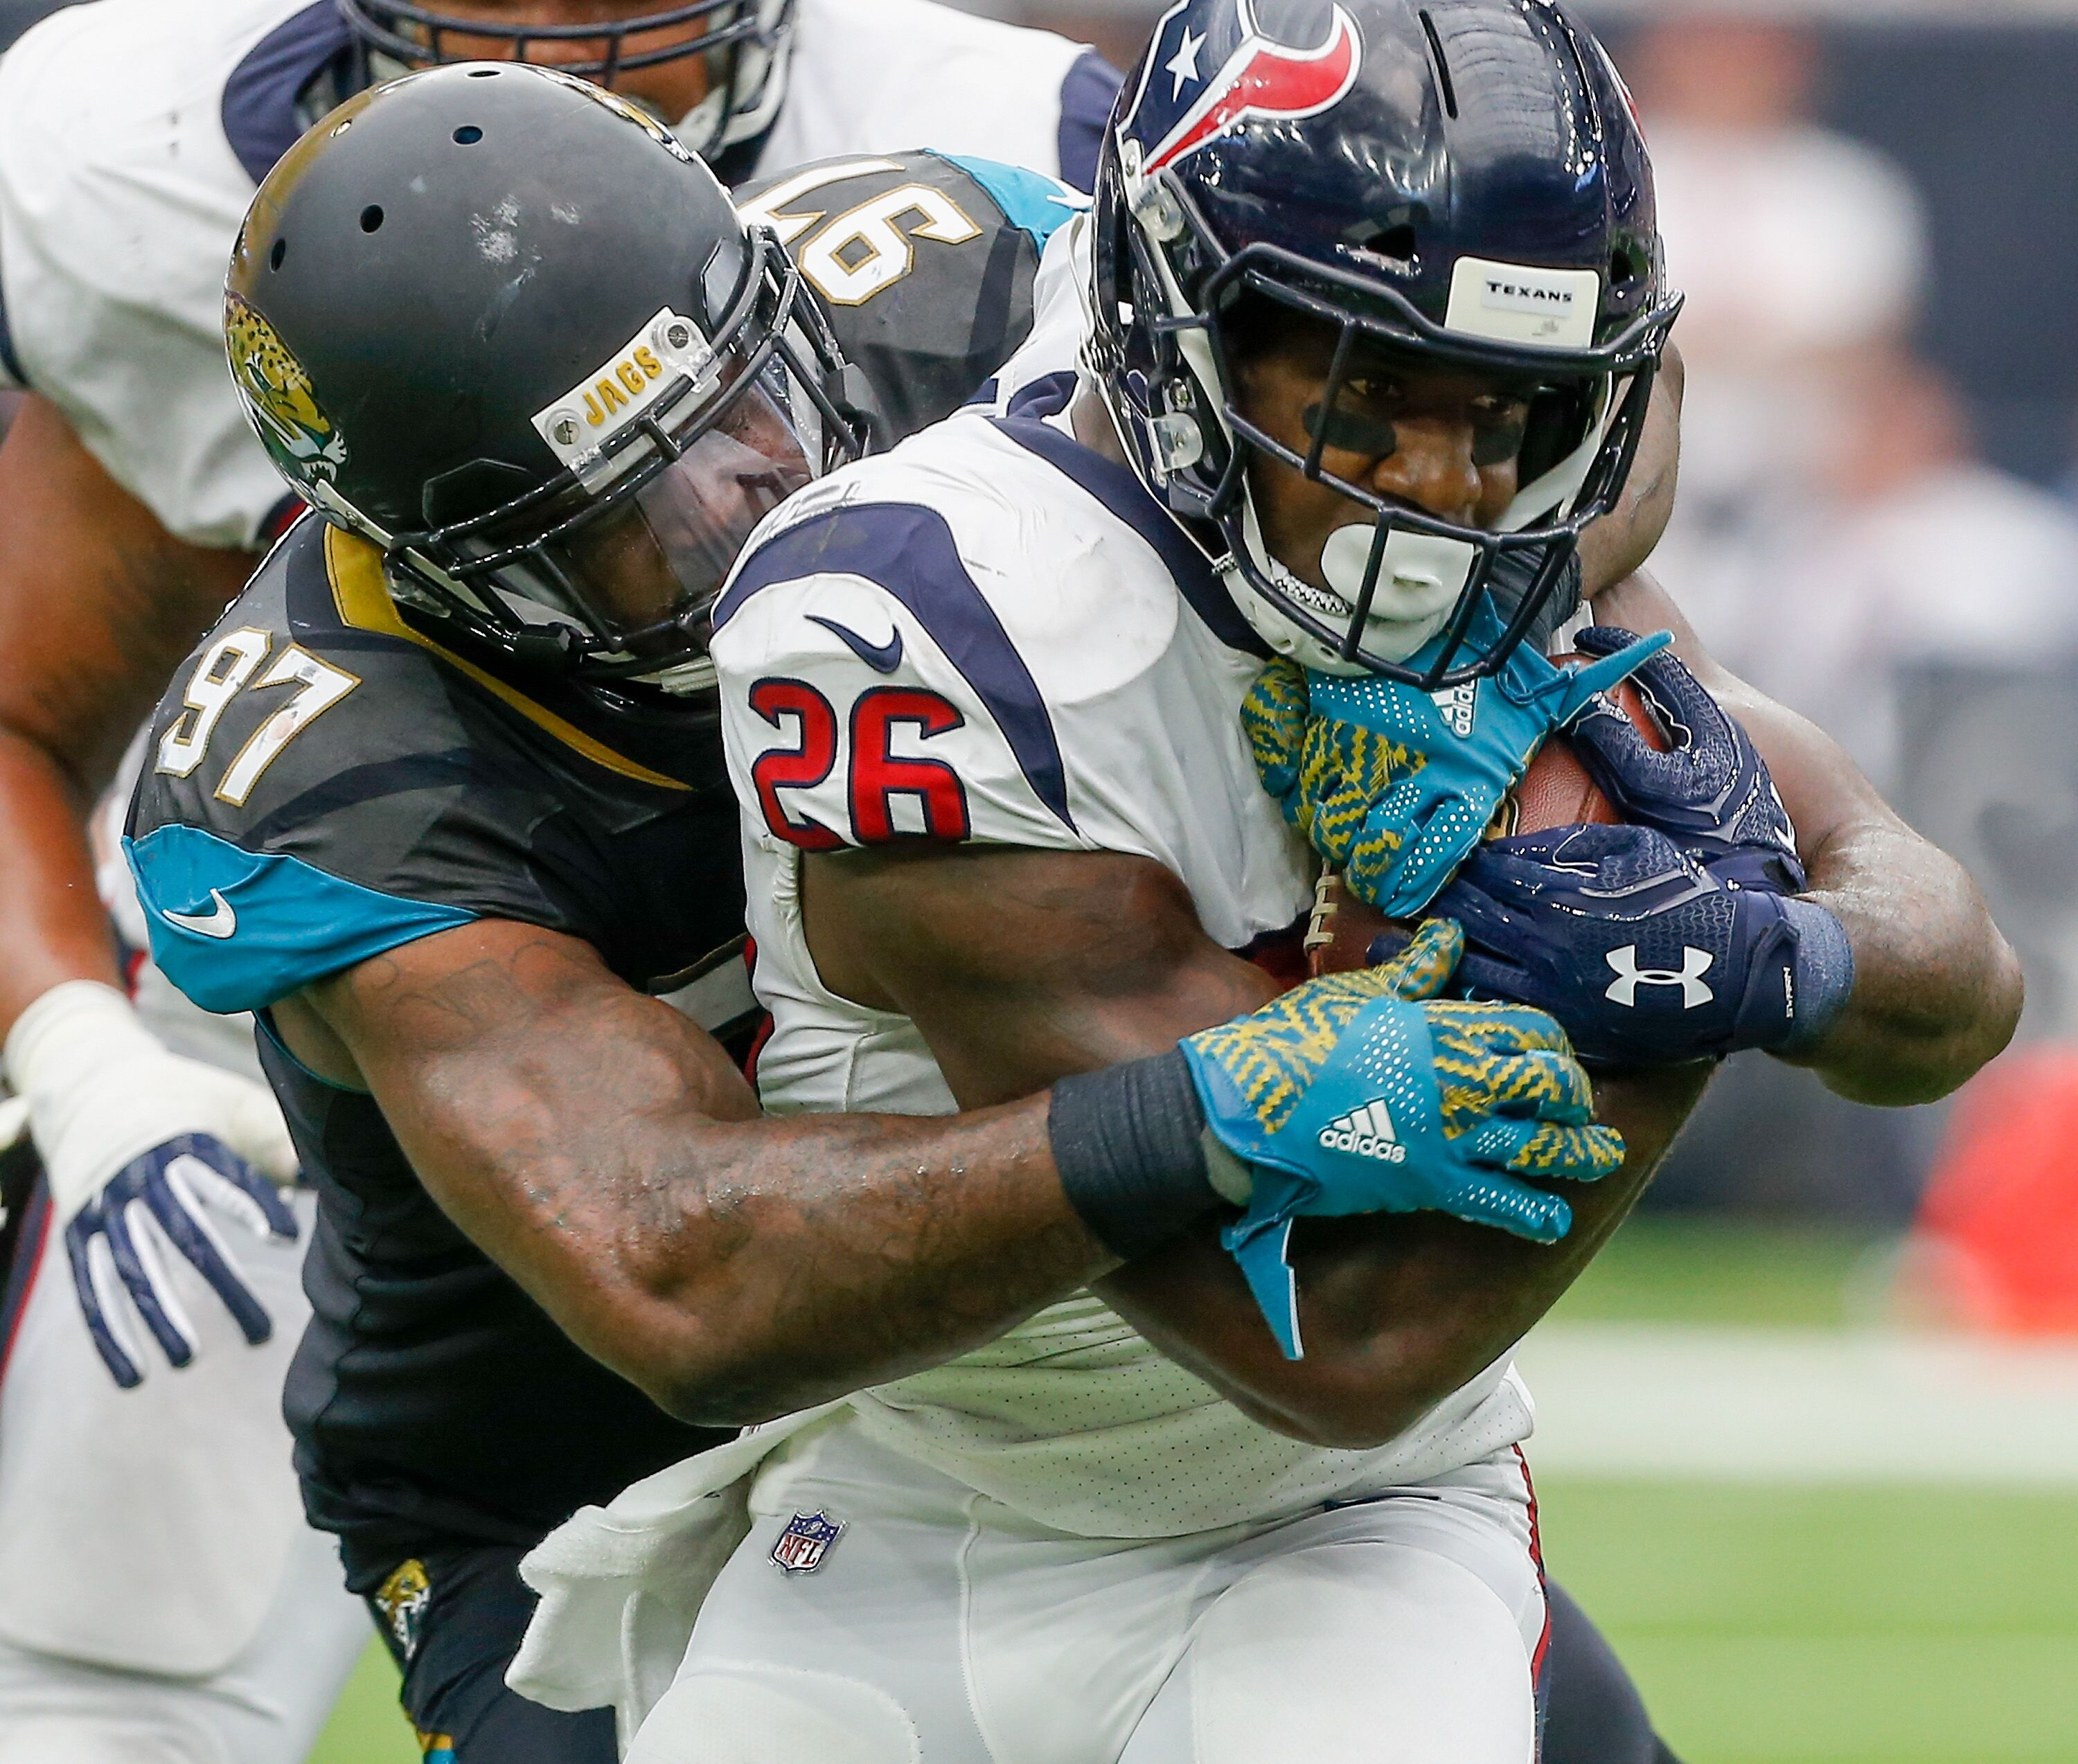 845377402-jacksonville-jaguars-v-houston-texans.jpg